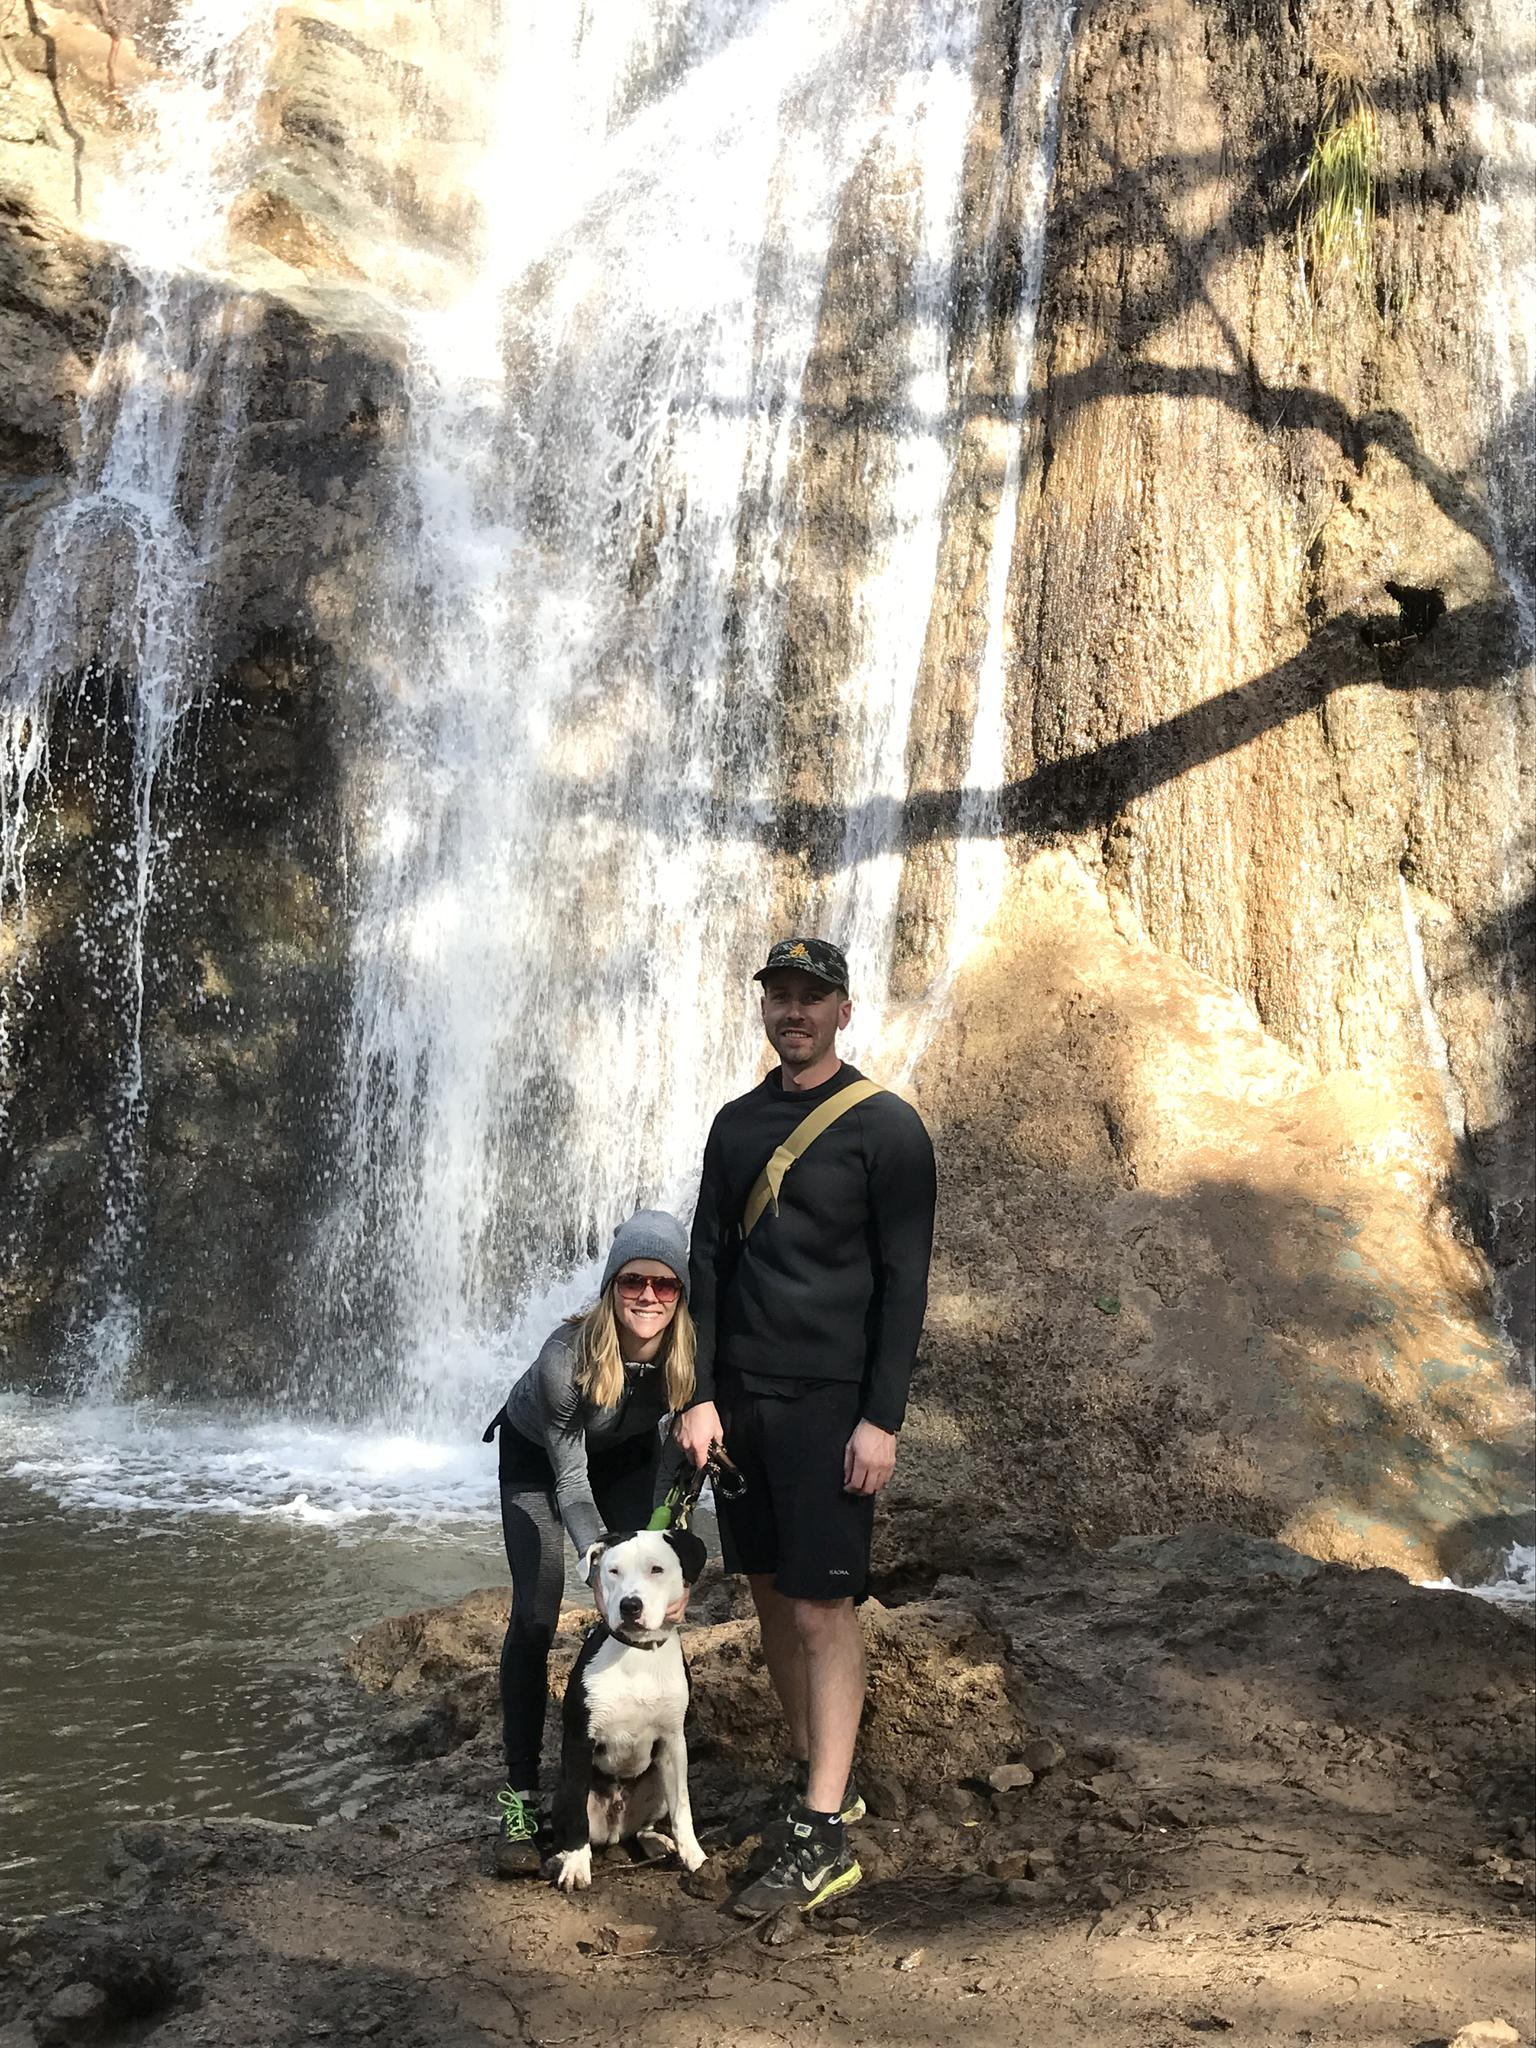 Waterfall hike in California